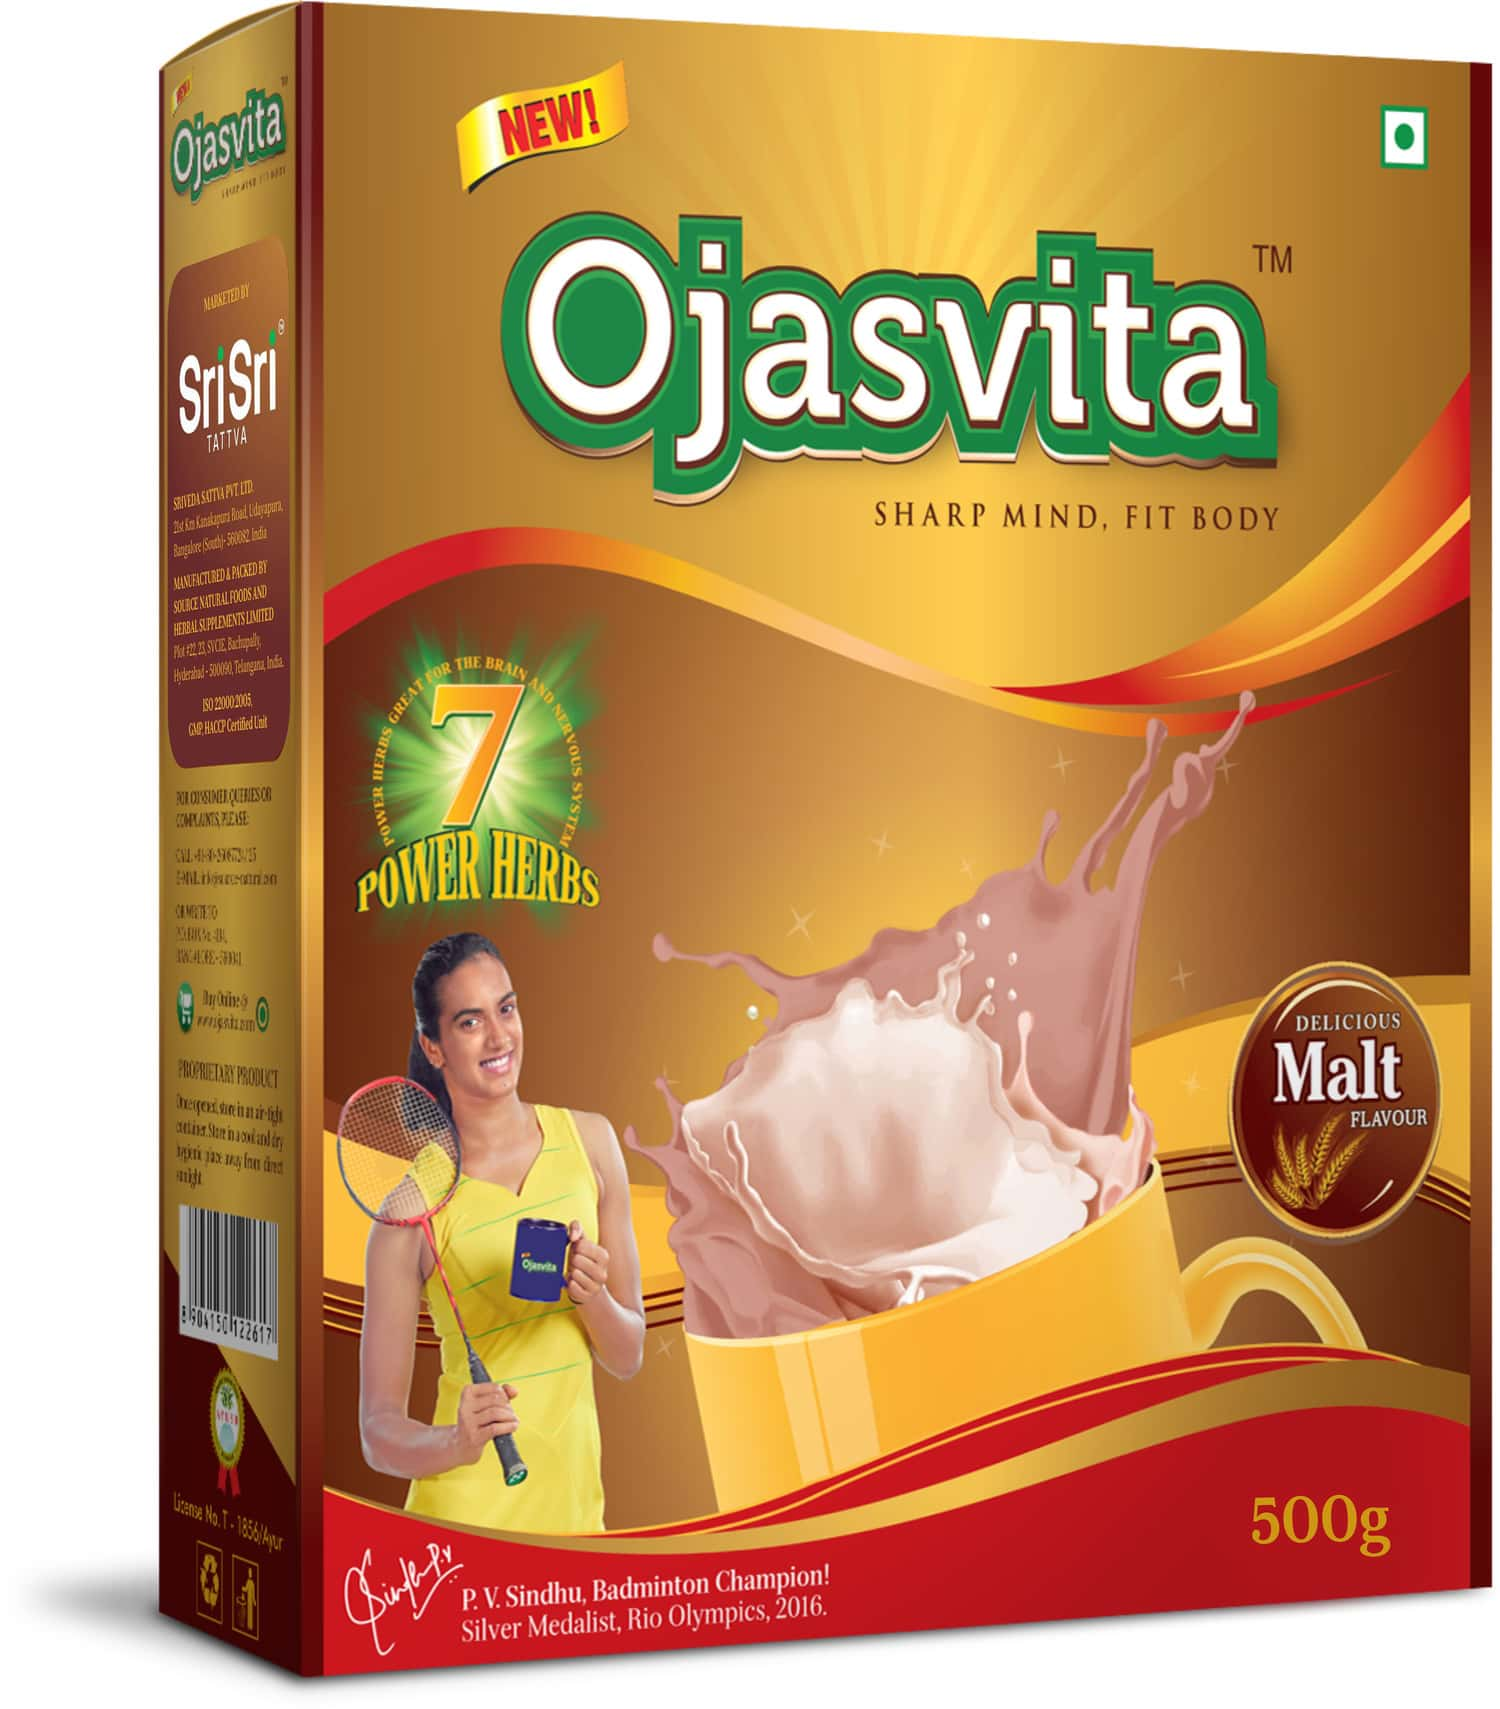 Sri Sri Tattva Ojasvita Malt Box Refill, 500gm